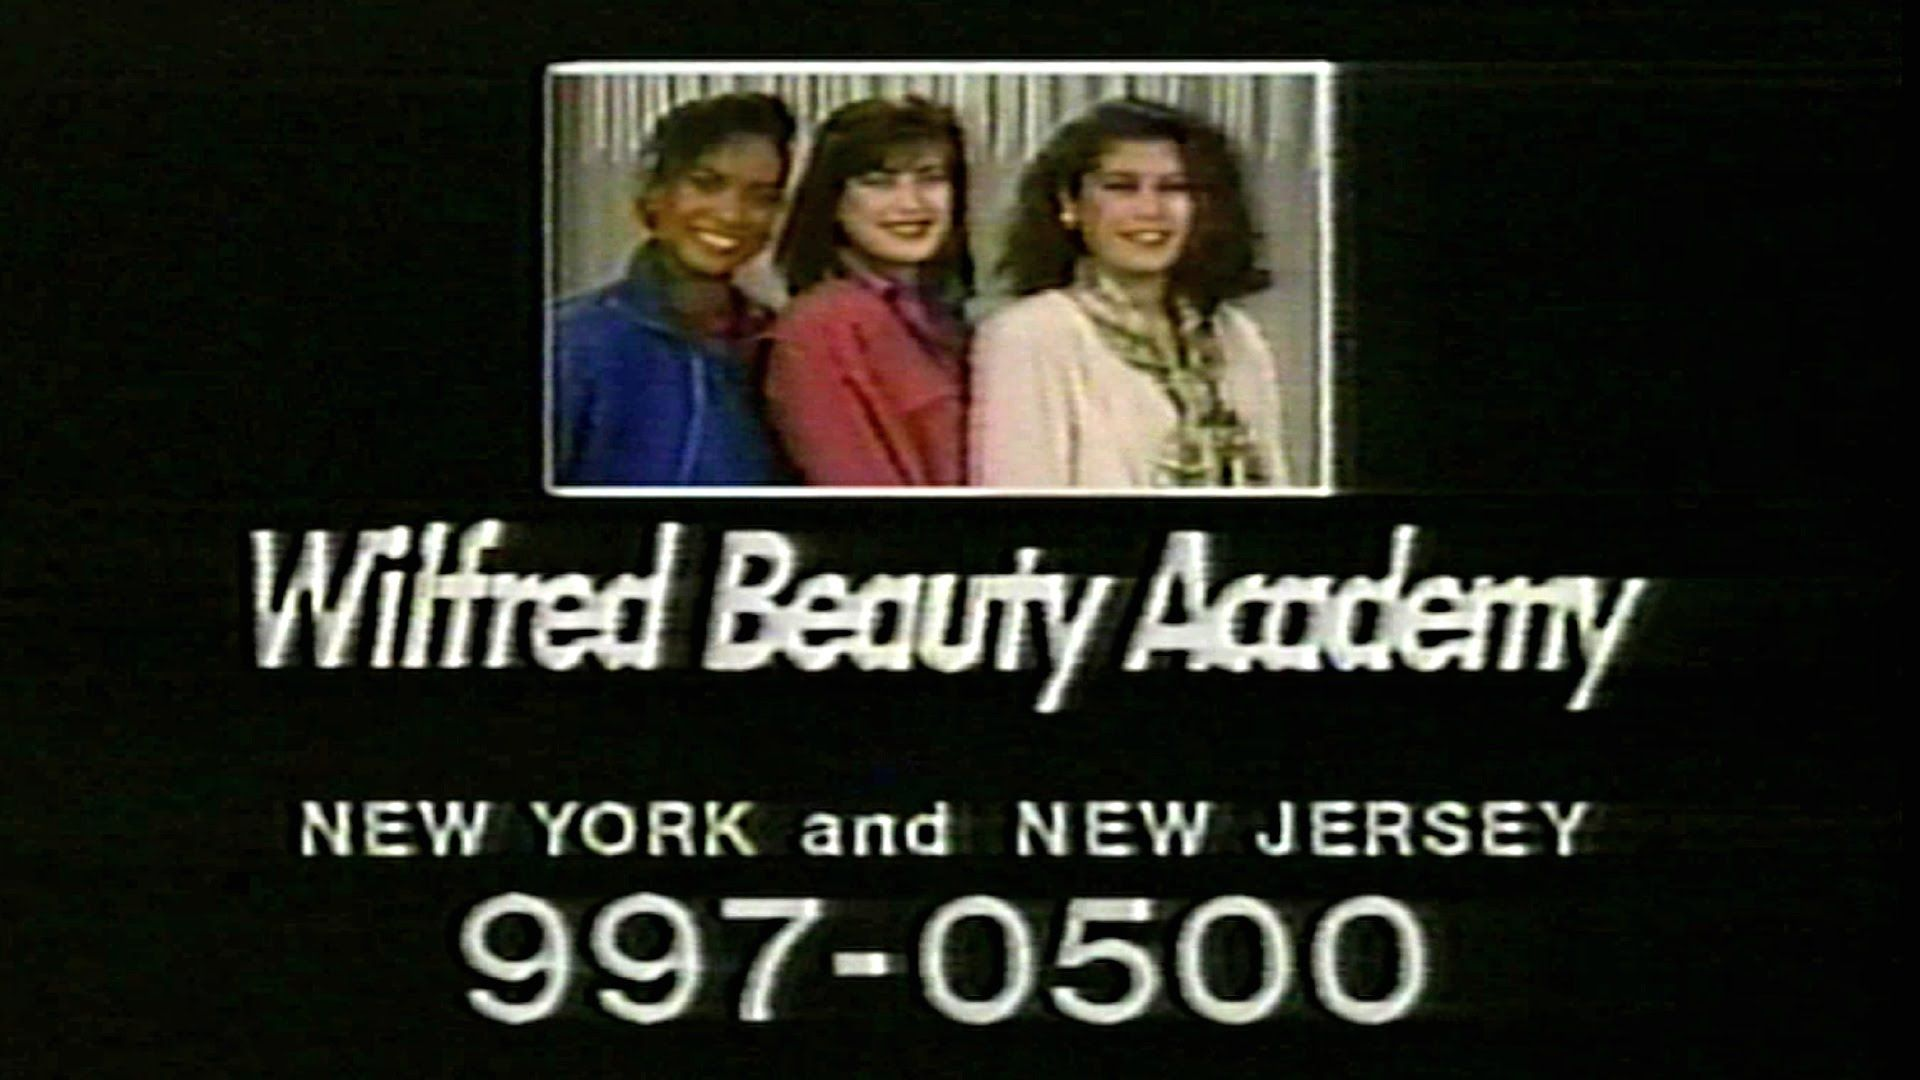 1988 Commercial Wilfred Beauty Academy 9970500